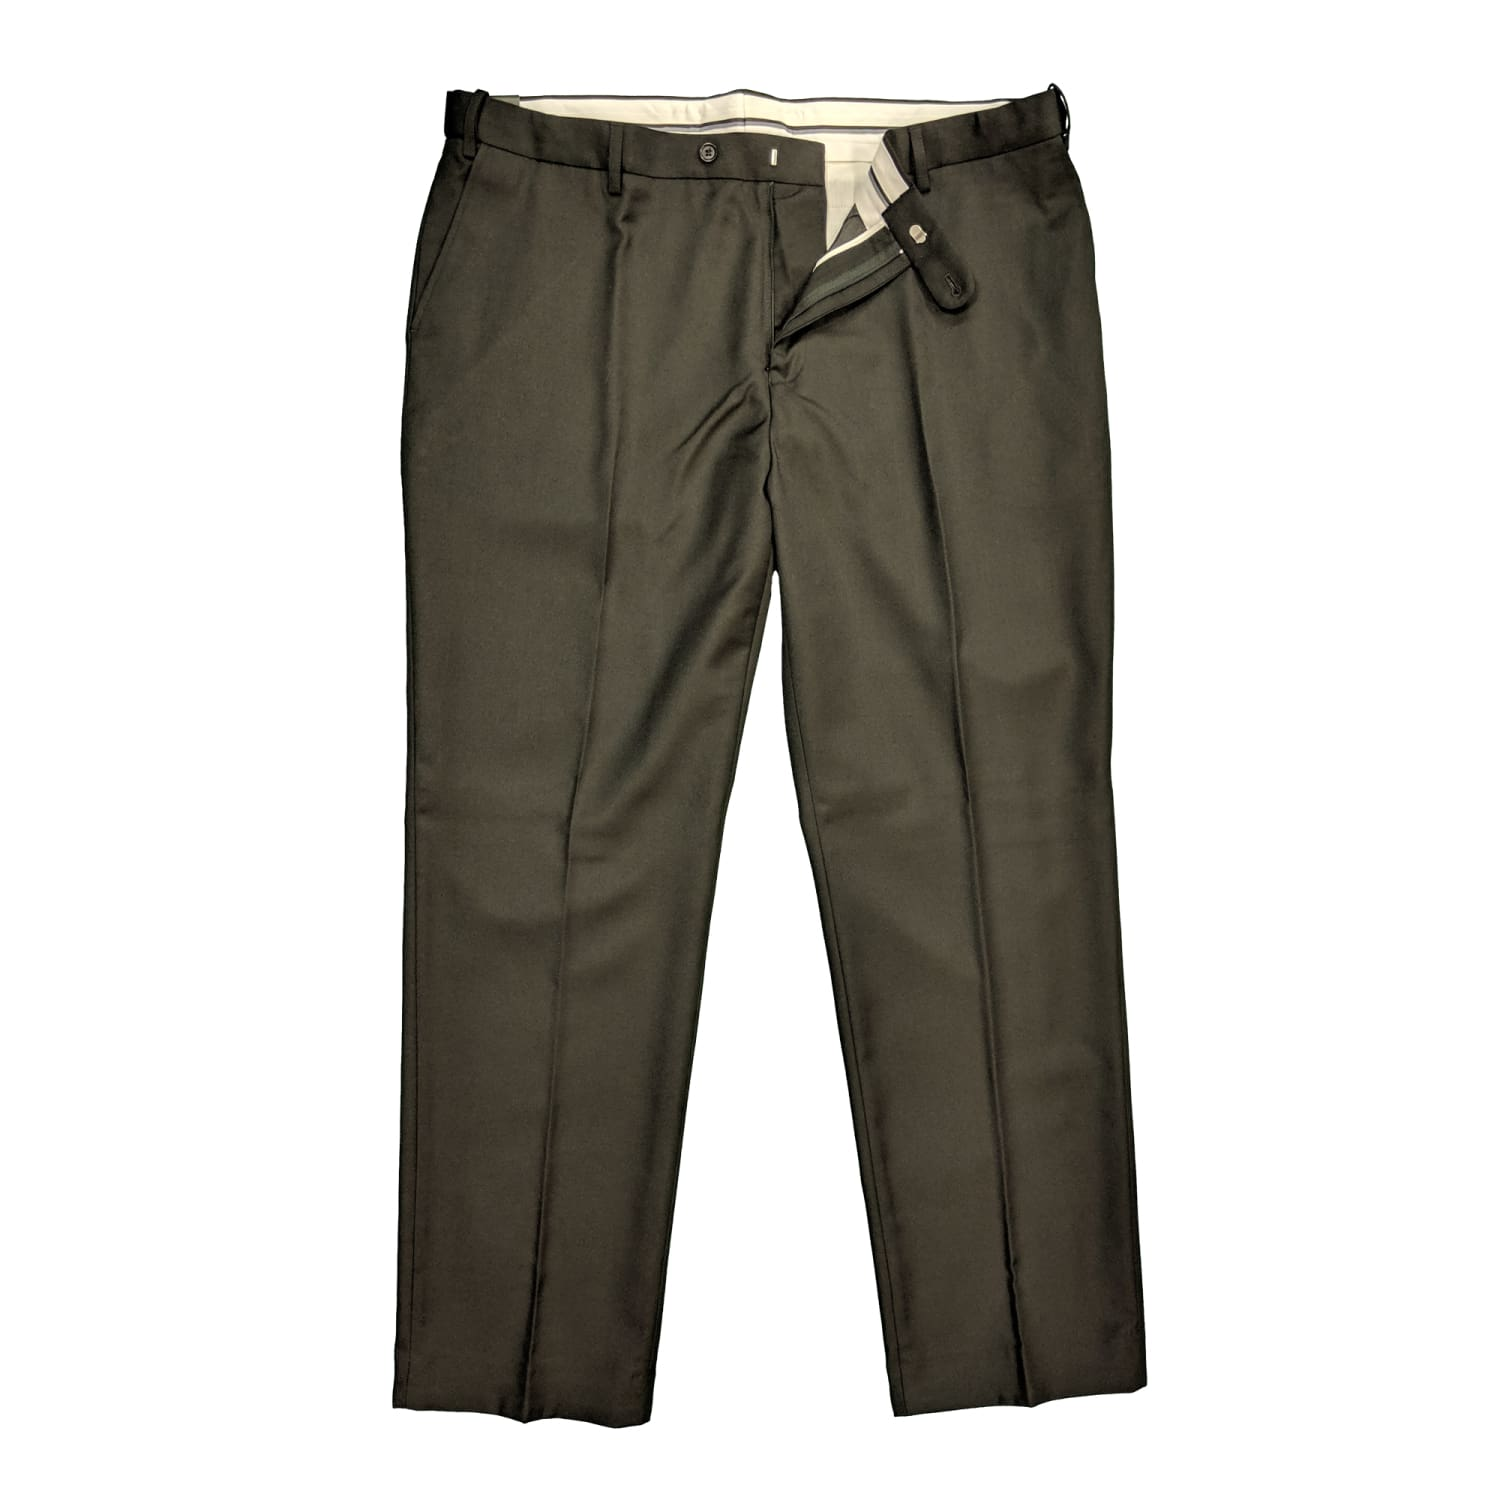 Skopes Trousers - MM7330 - Wexford - Black 1